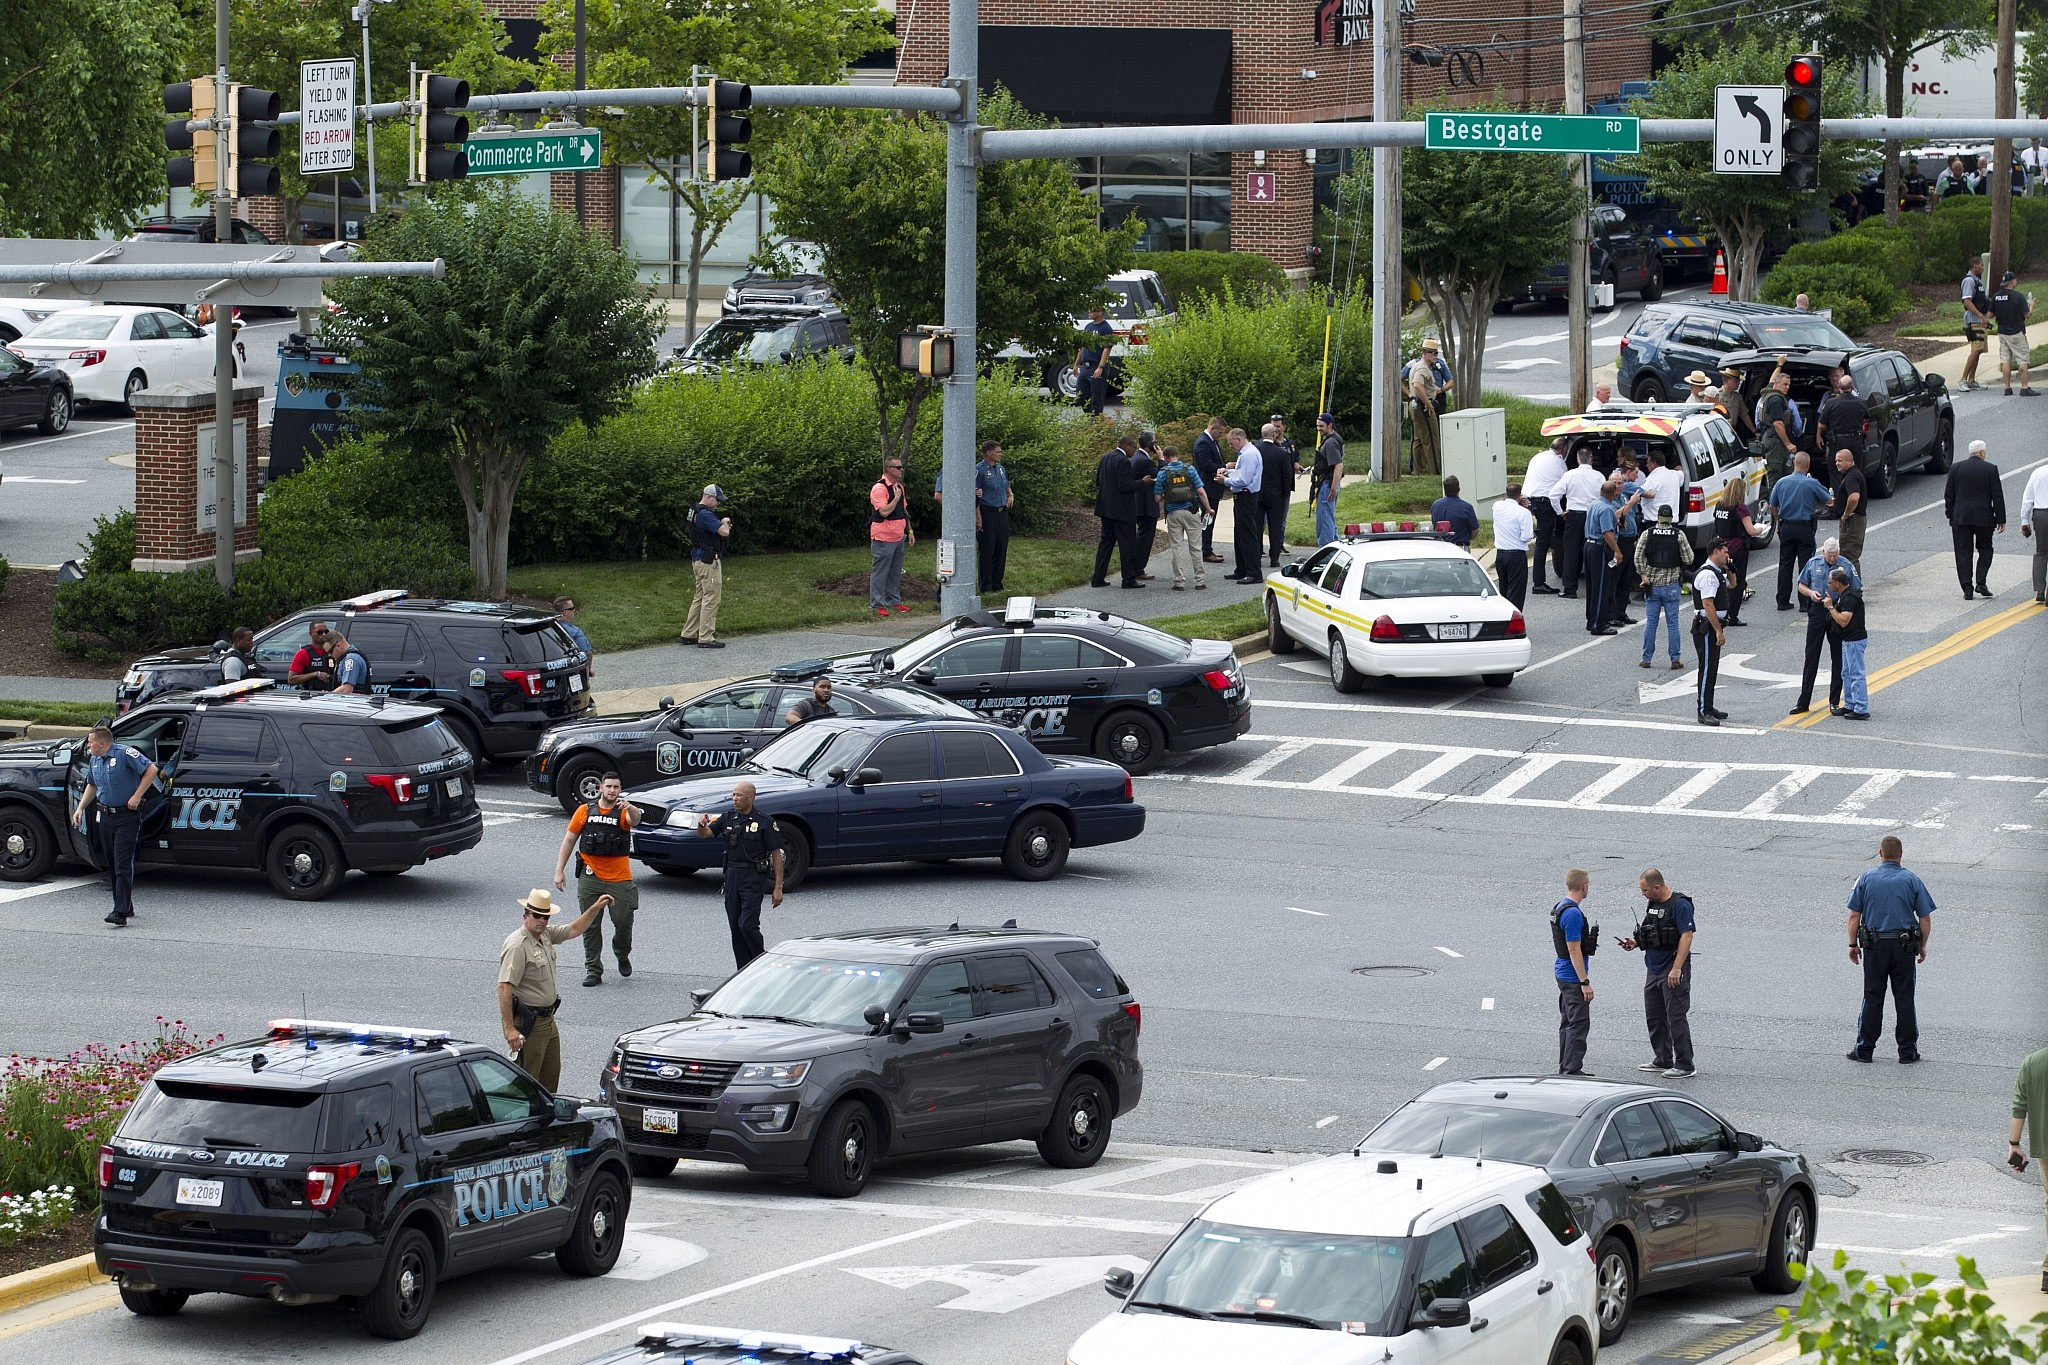 5 killed, others injured in Maryland newspaper shooting